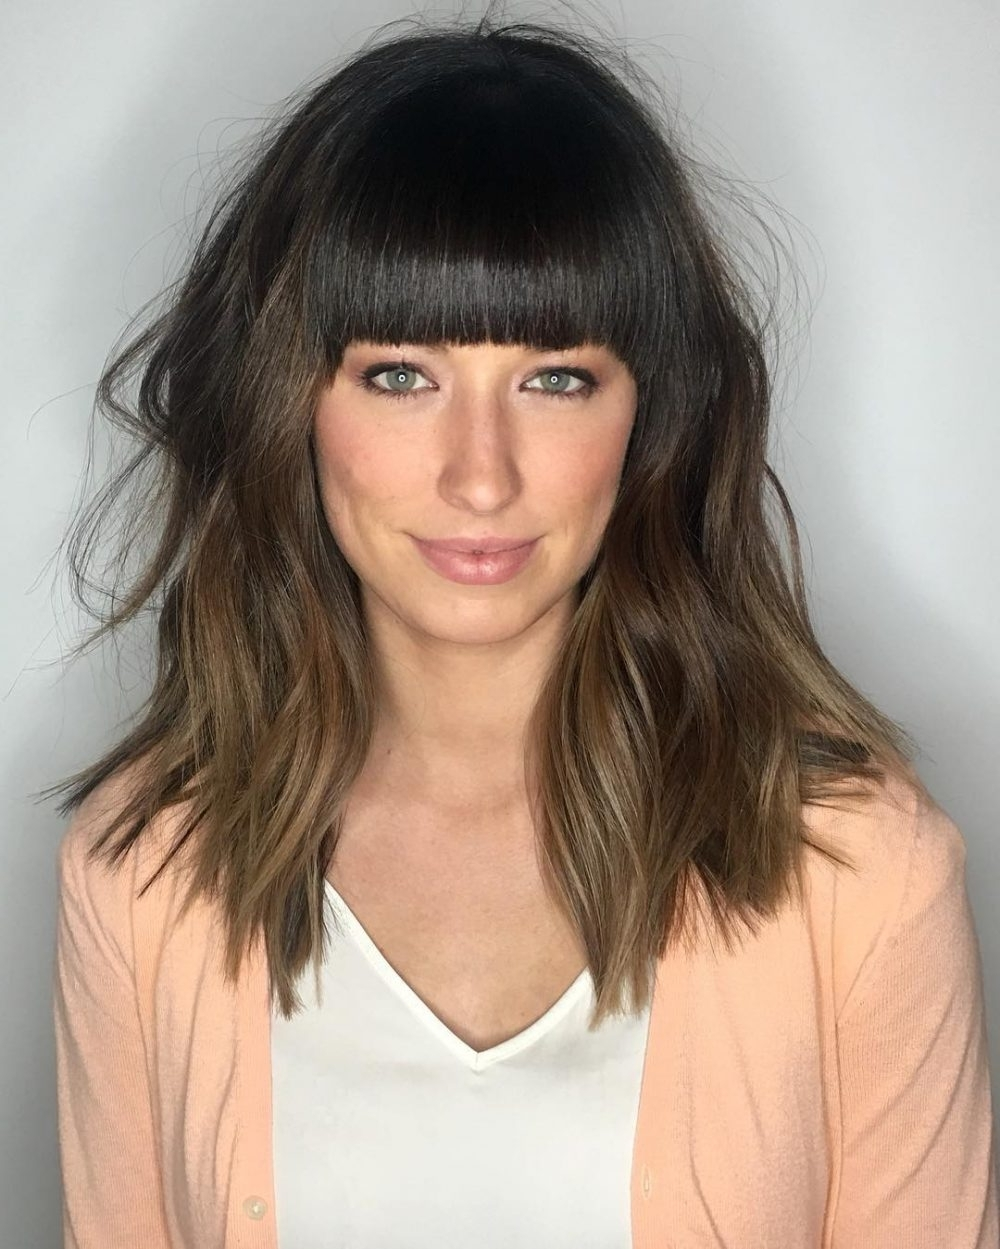 53 Popular Medium Length Hairstyles With Bangs In 2021 Medium Thick Hairstyles With Bangs